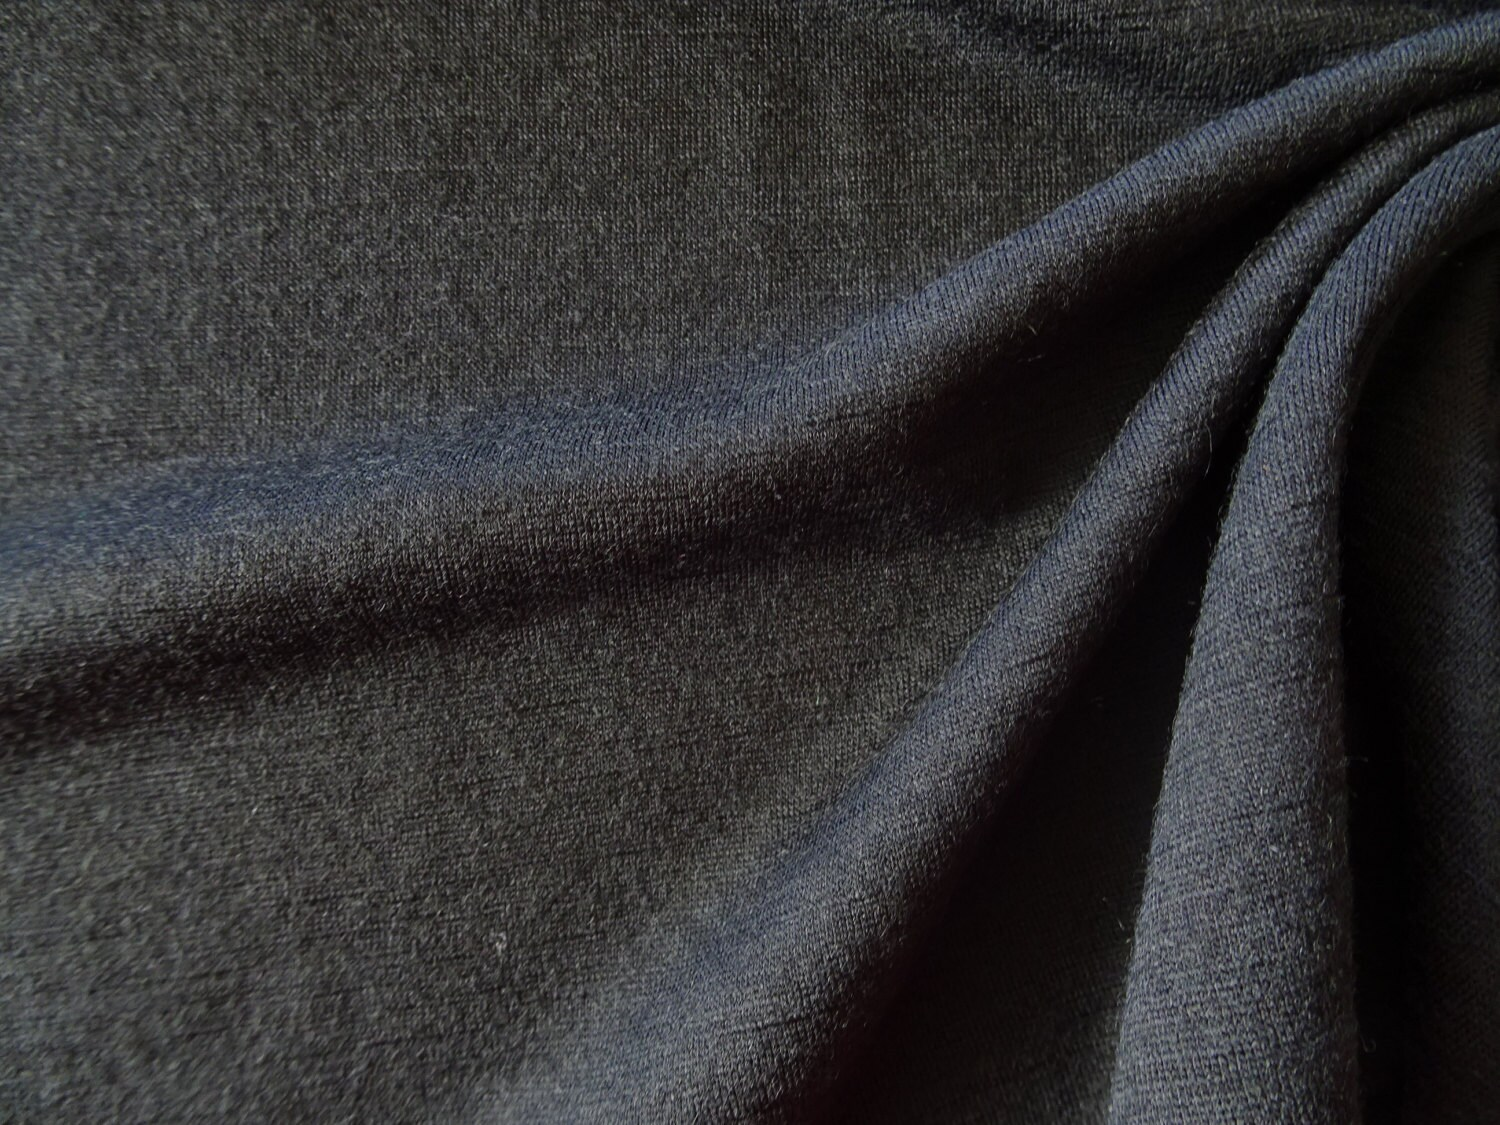 100 Merino Wool Fabric Jersey Knit From New Zealand